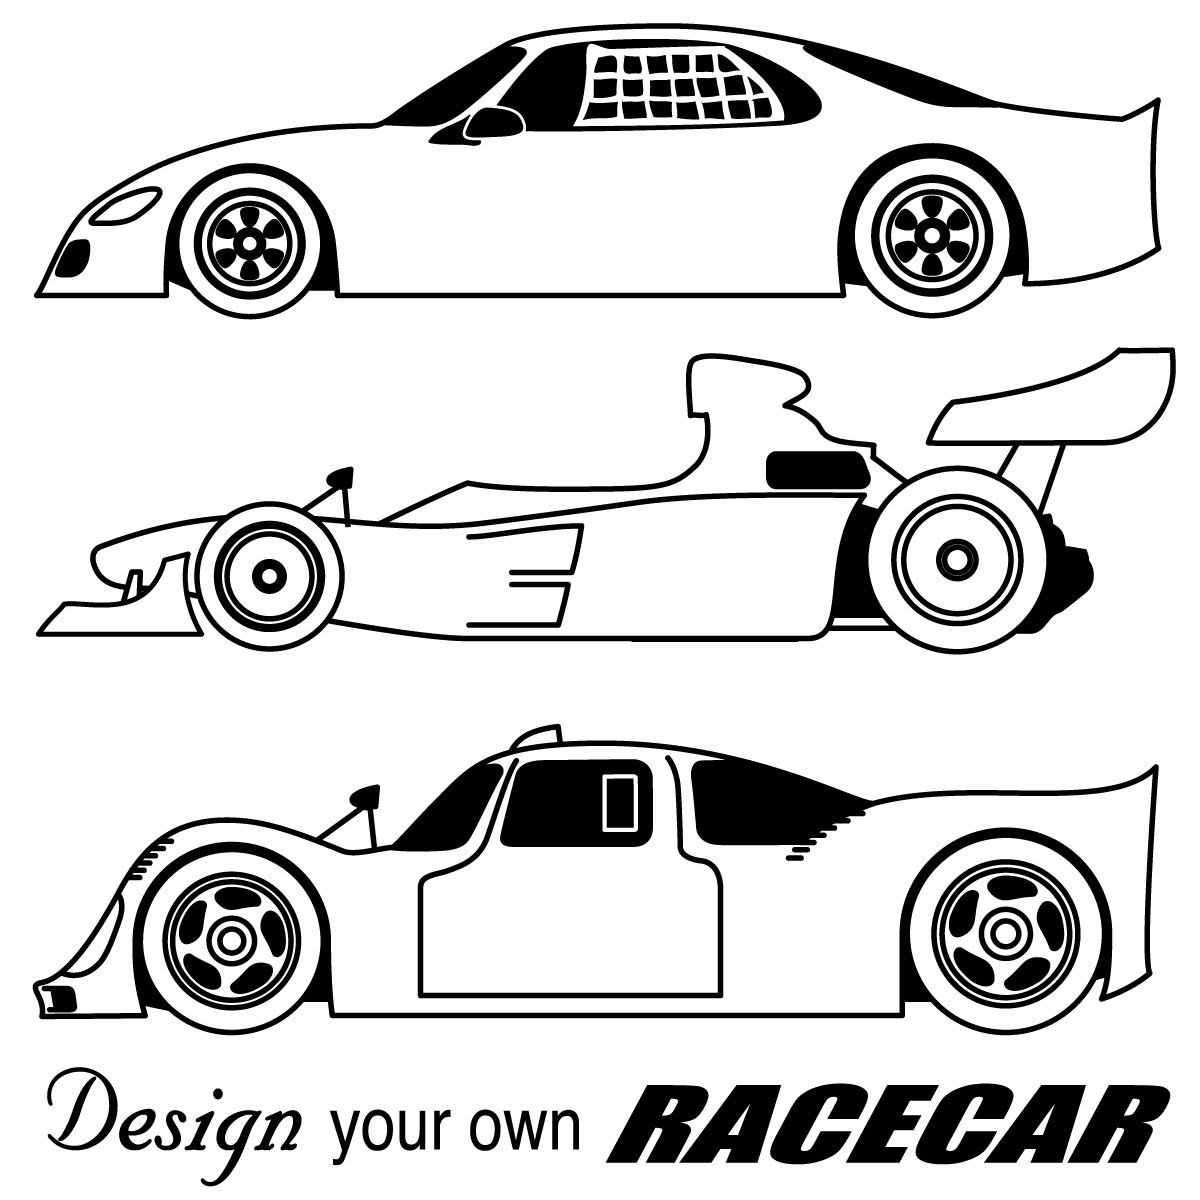 Race Cars Coloring Pages Free Large Images Race Car Coloring Pages Sports Coloring Pages Cars Coloring Pages